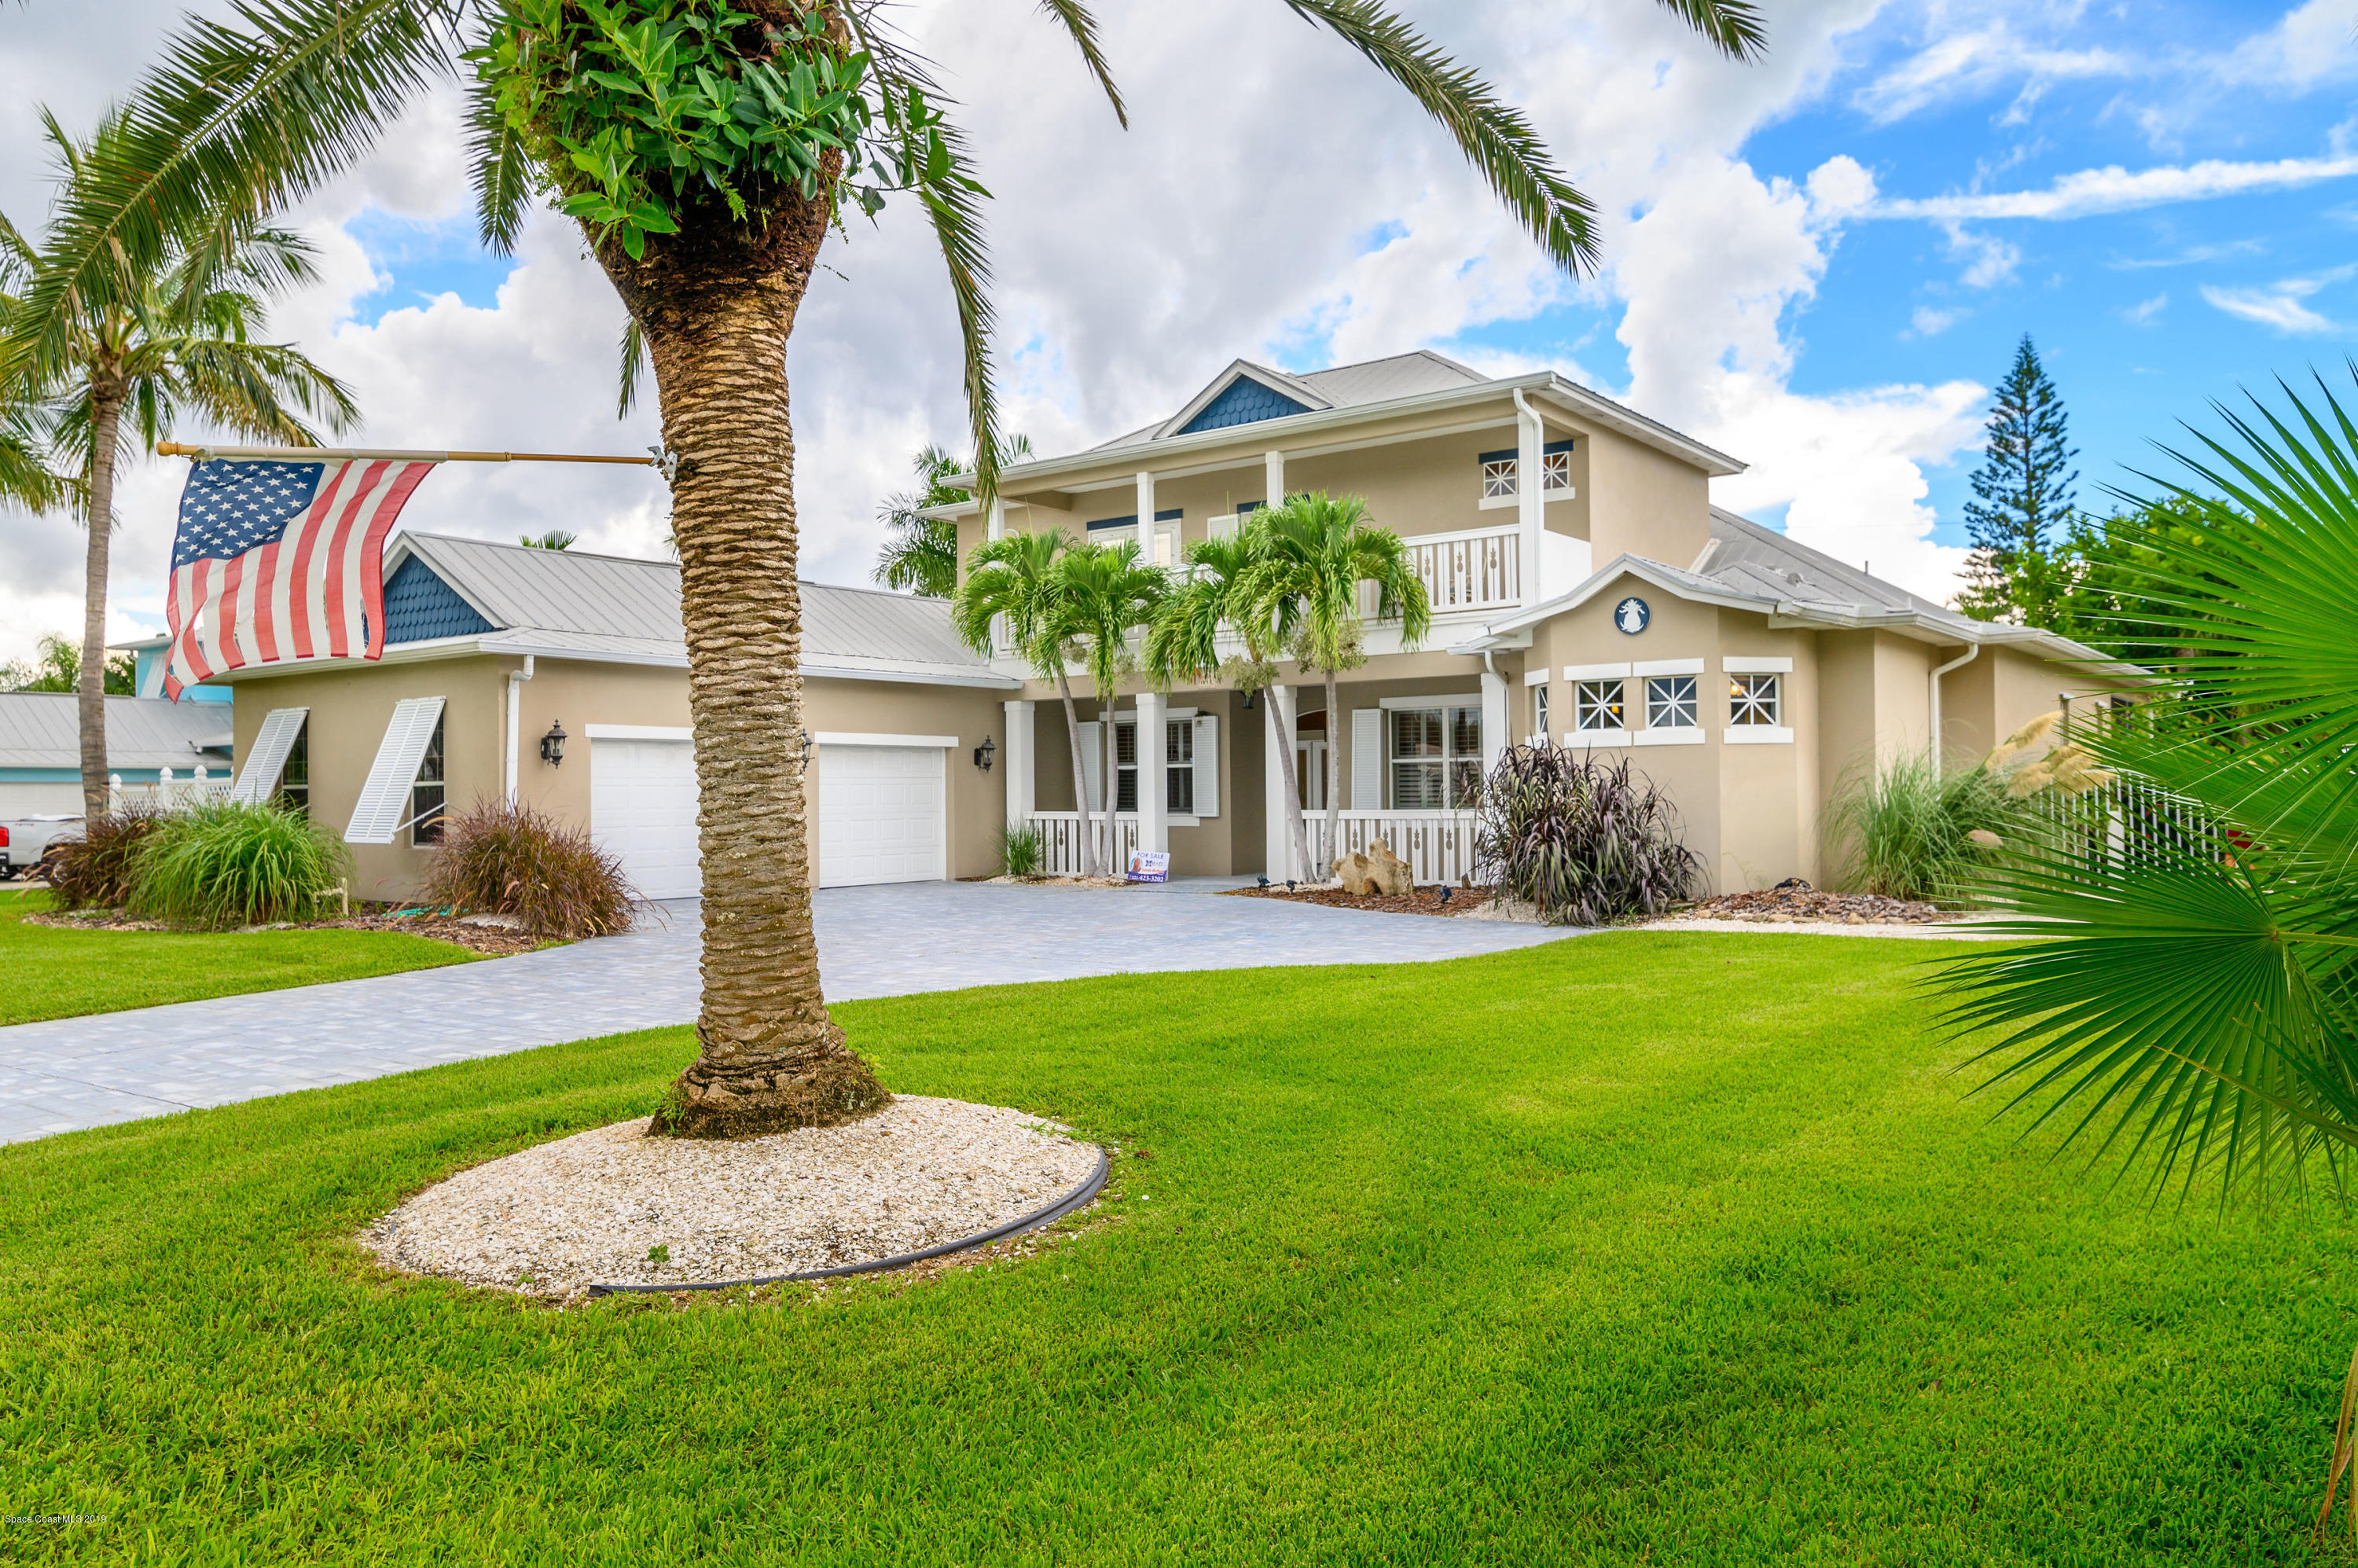 Single Family Homes for Sale at 148 Miami Indialantic, Florida 32903 United States